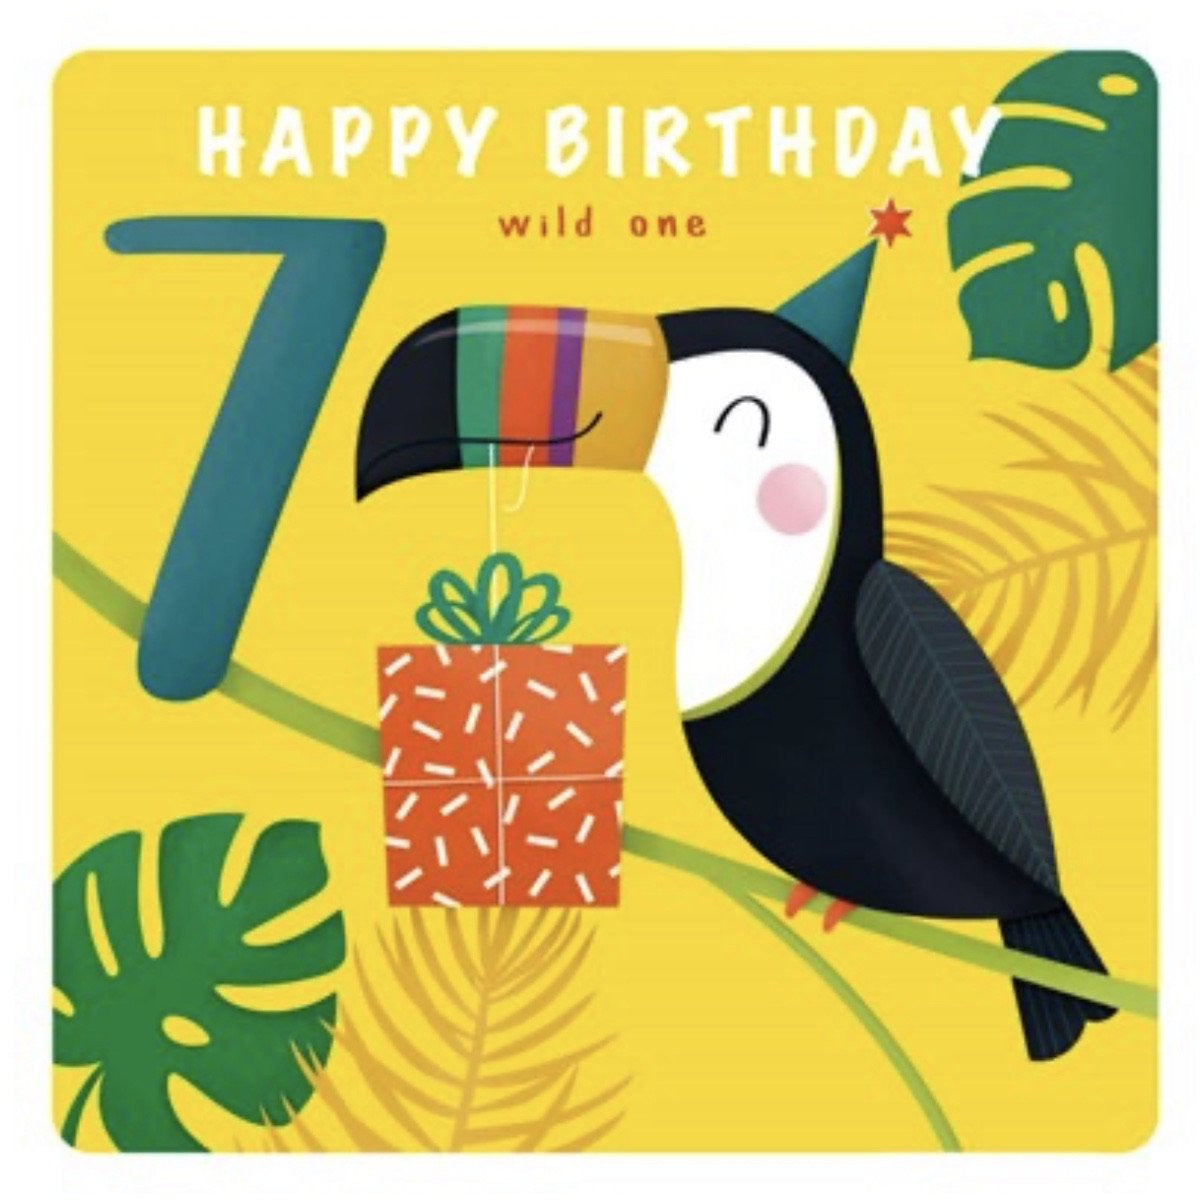 The Art File Seventh Birthday Card - Toucan (4706196160644)